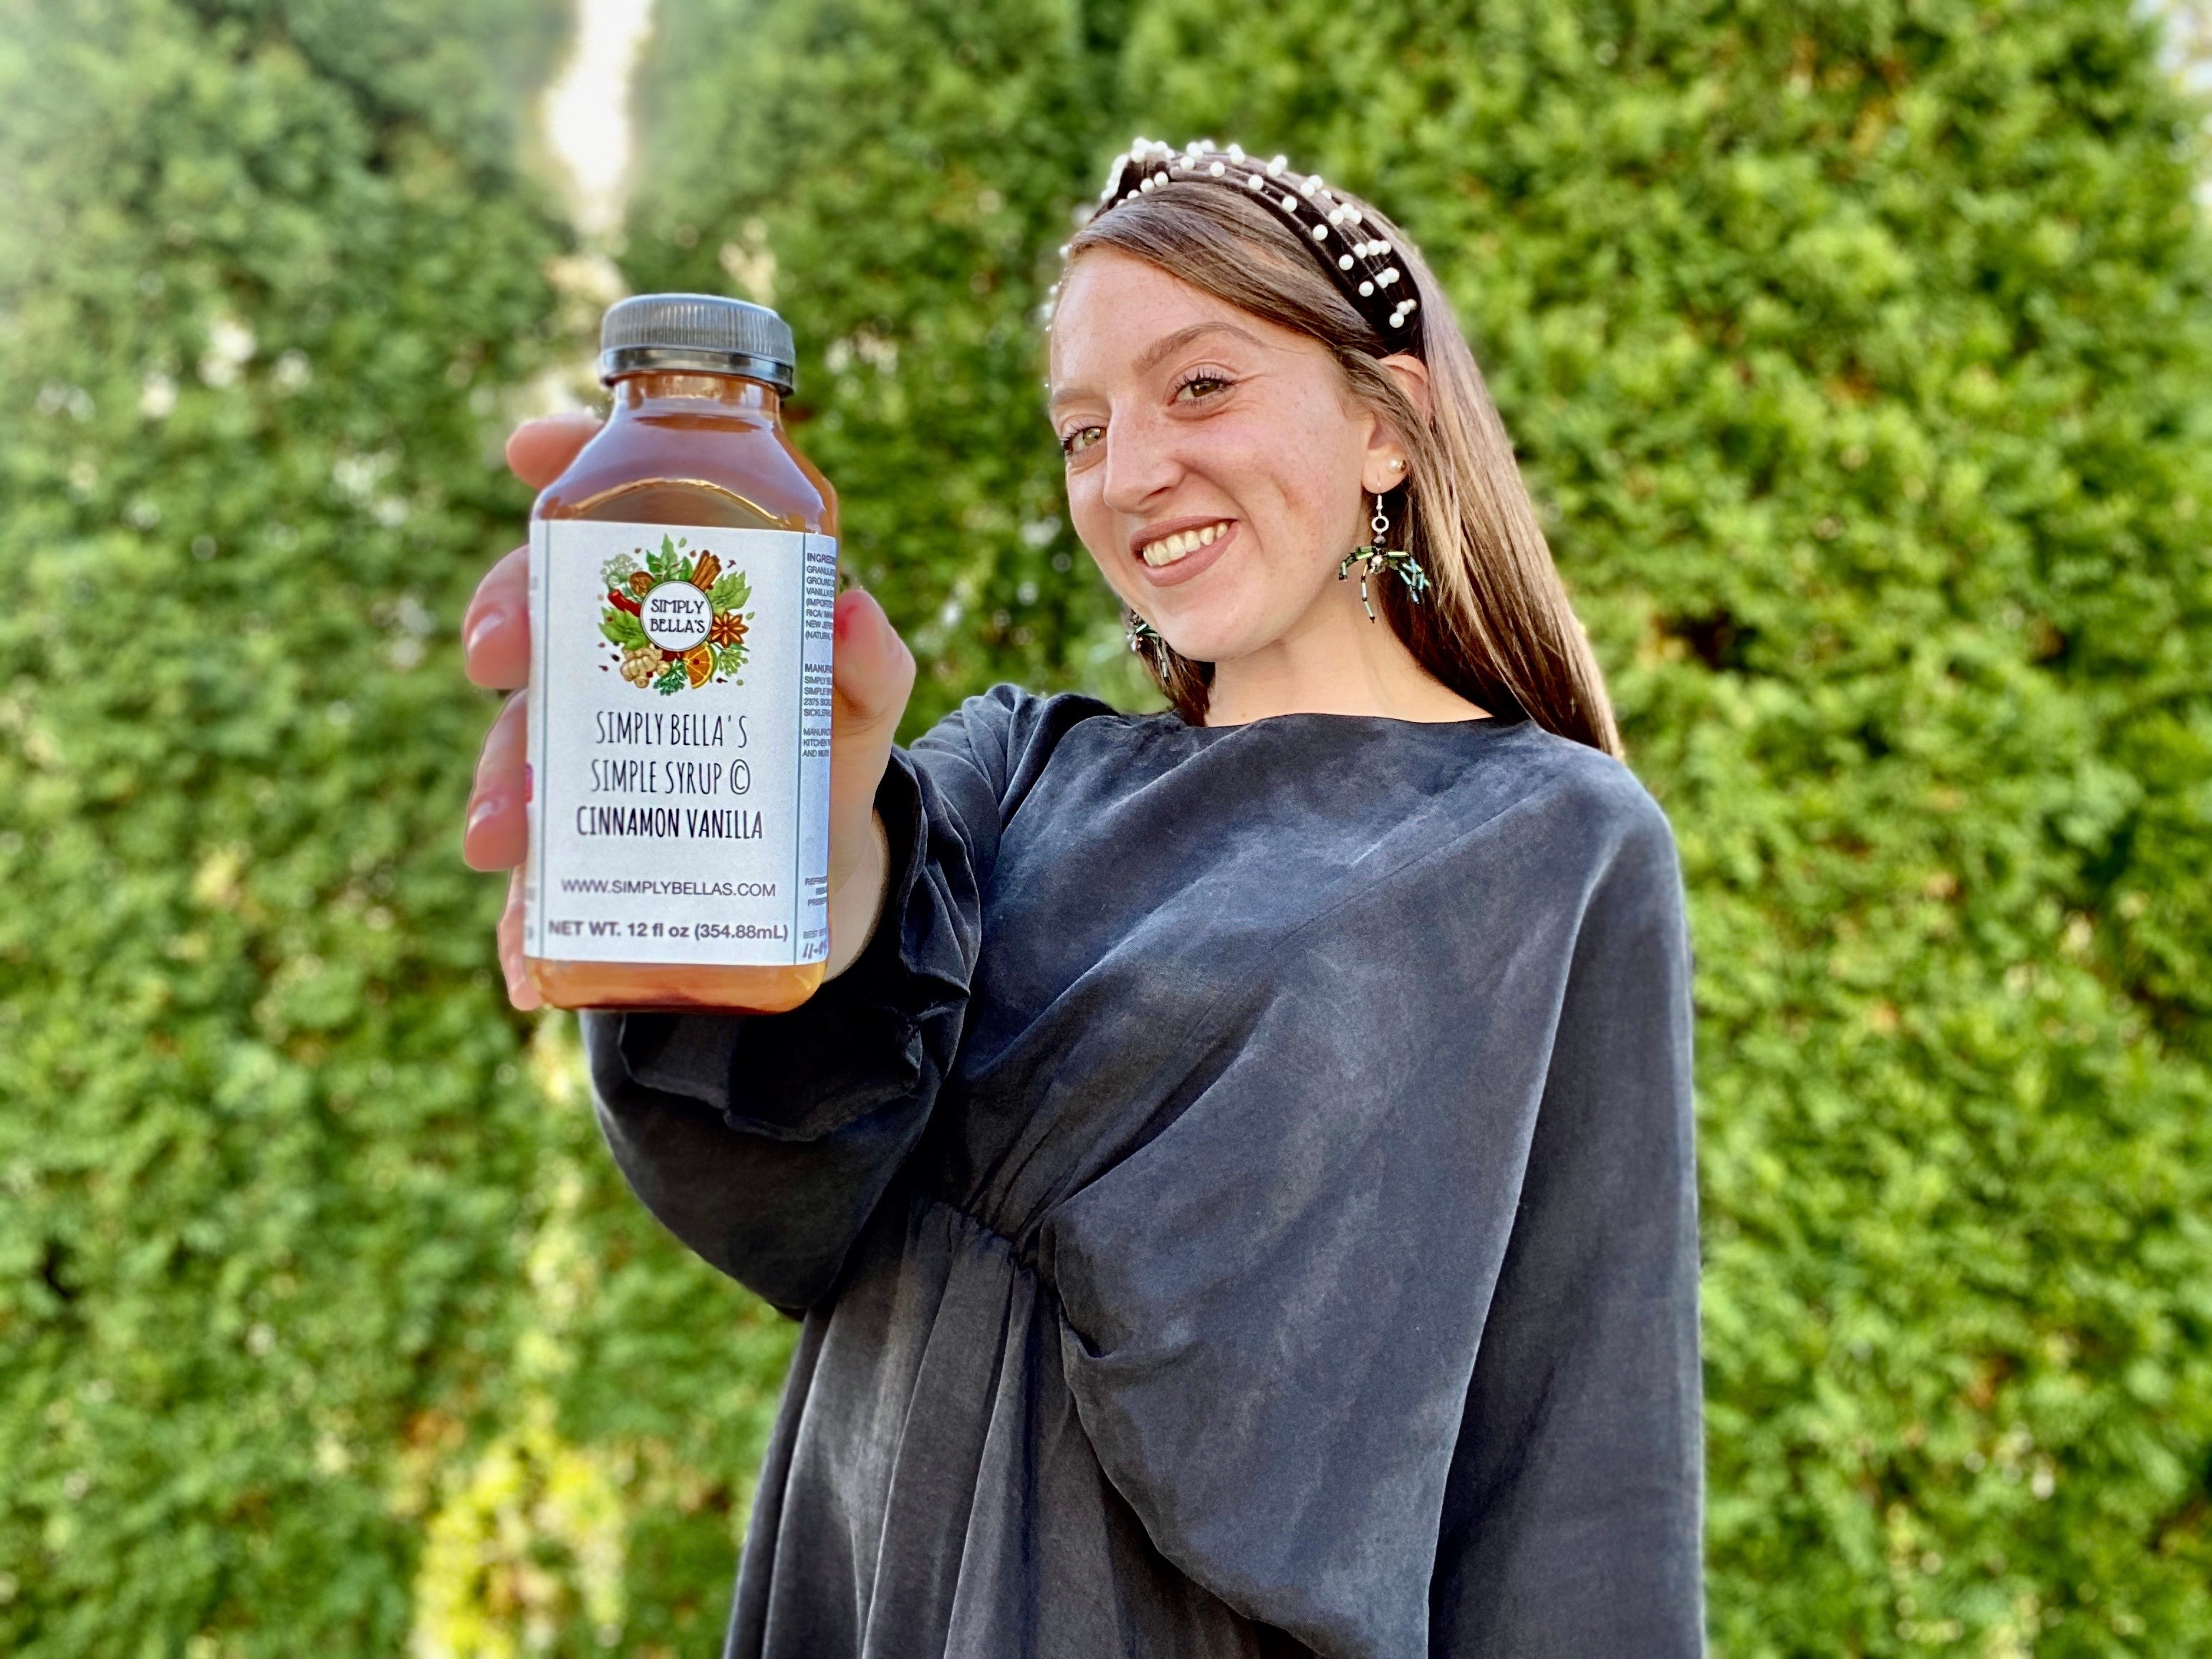 Isabella Abbate, owner of Simply Bella's Simple Syrup, is shown with her cinnamon vanilla flavored simple syrup. Simply Bella's will host its inaugural Harvest Benefit on Oct. 21 at Villari's Lakeside Restaurant & Bar in Sicklerville.